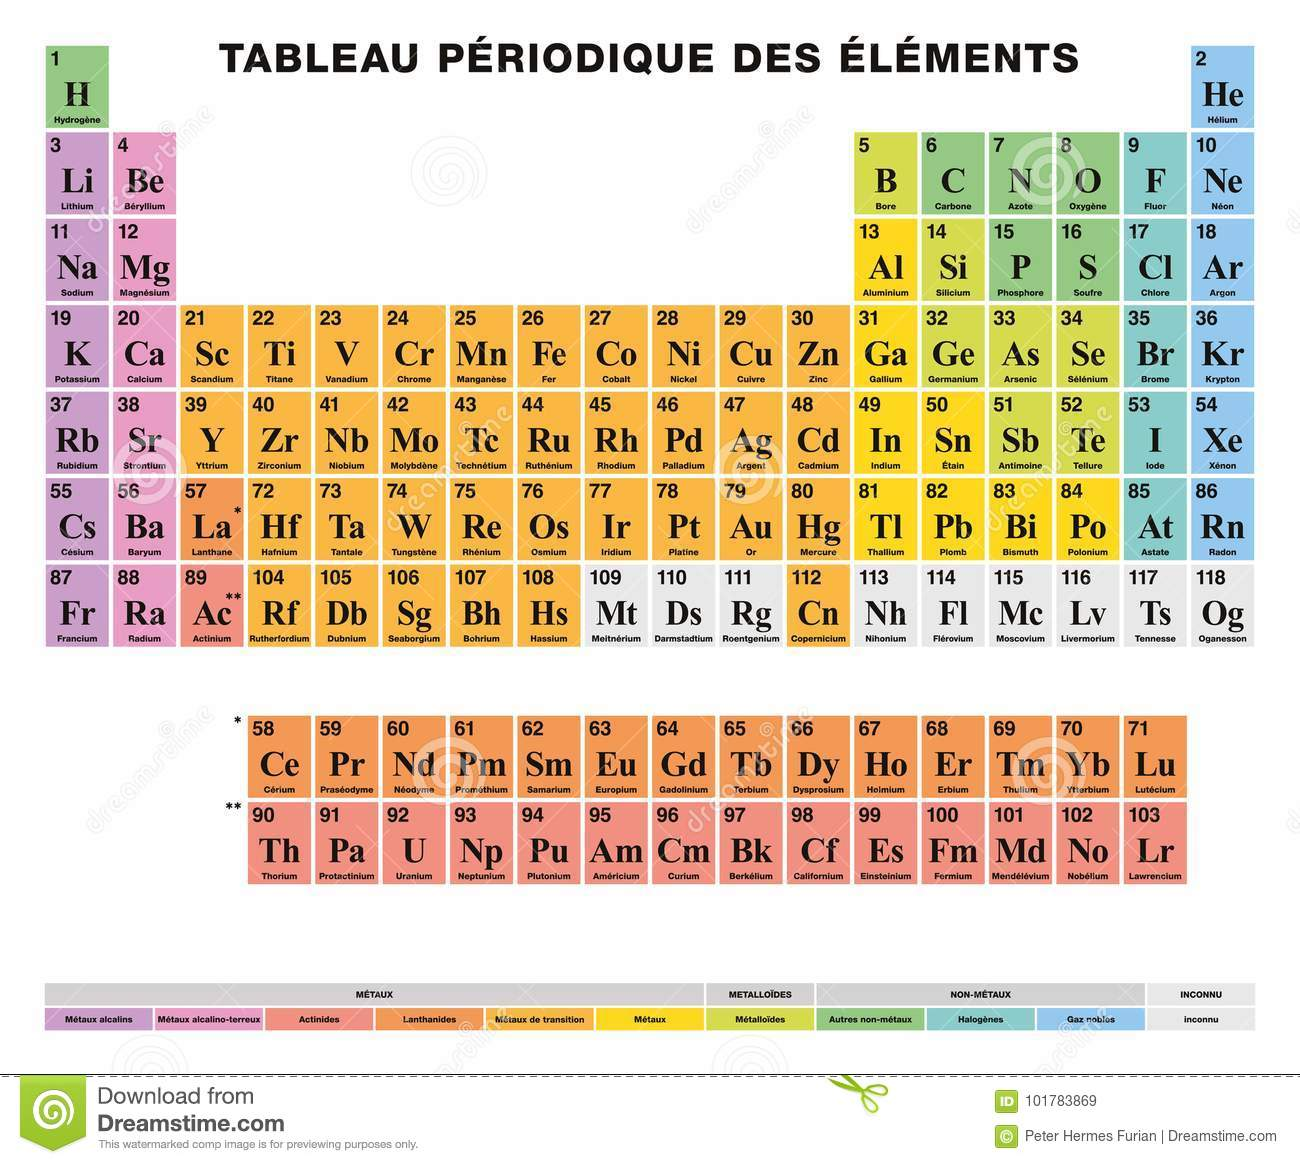 Periodic table of the elements french labeling colored cells stock download comp urtaz Choice Image